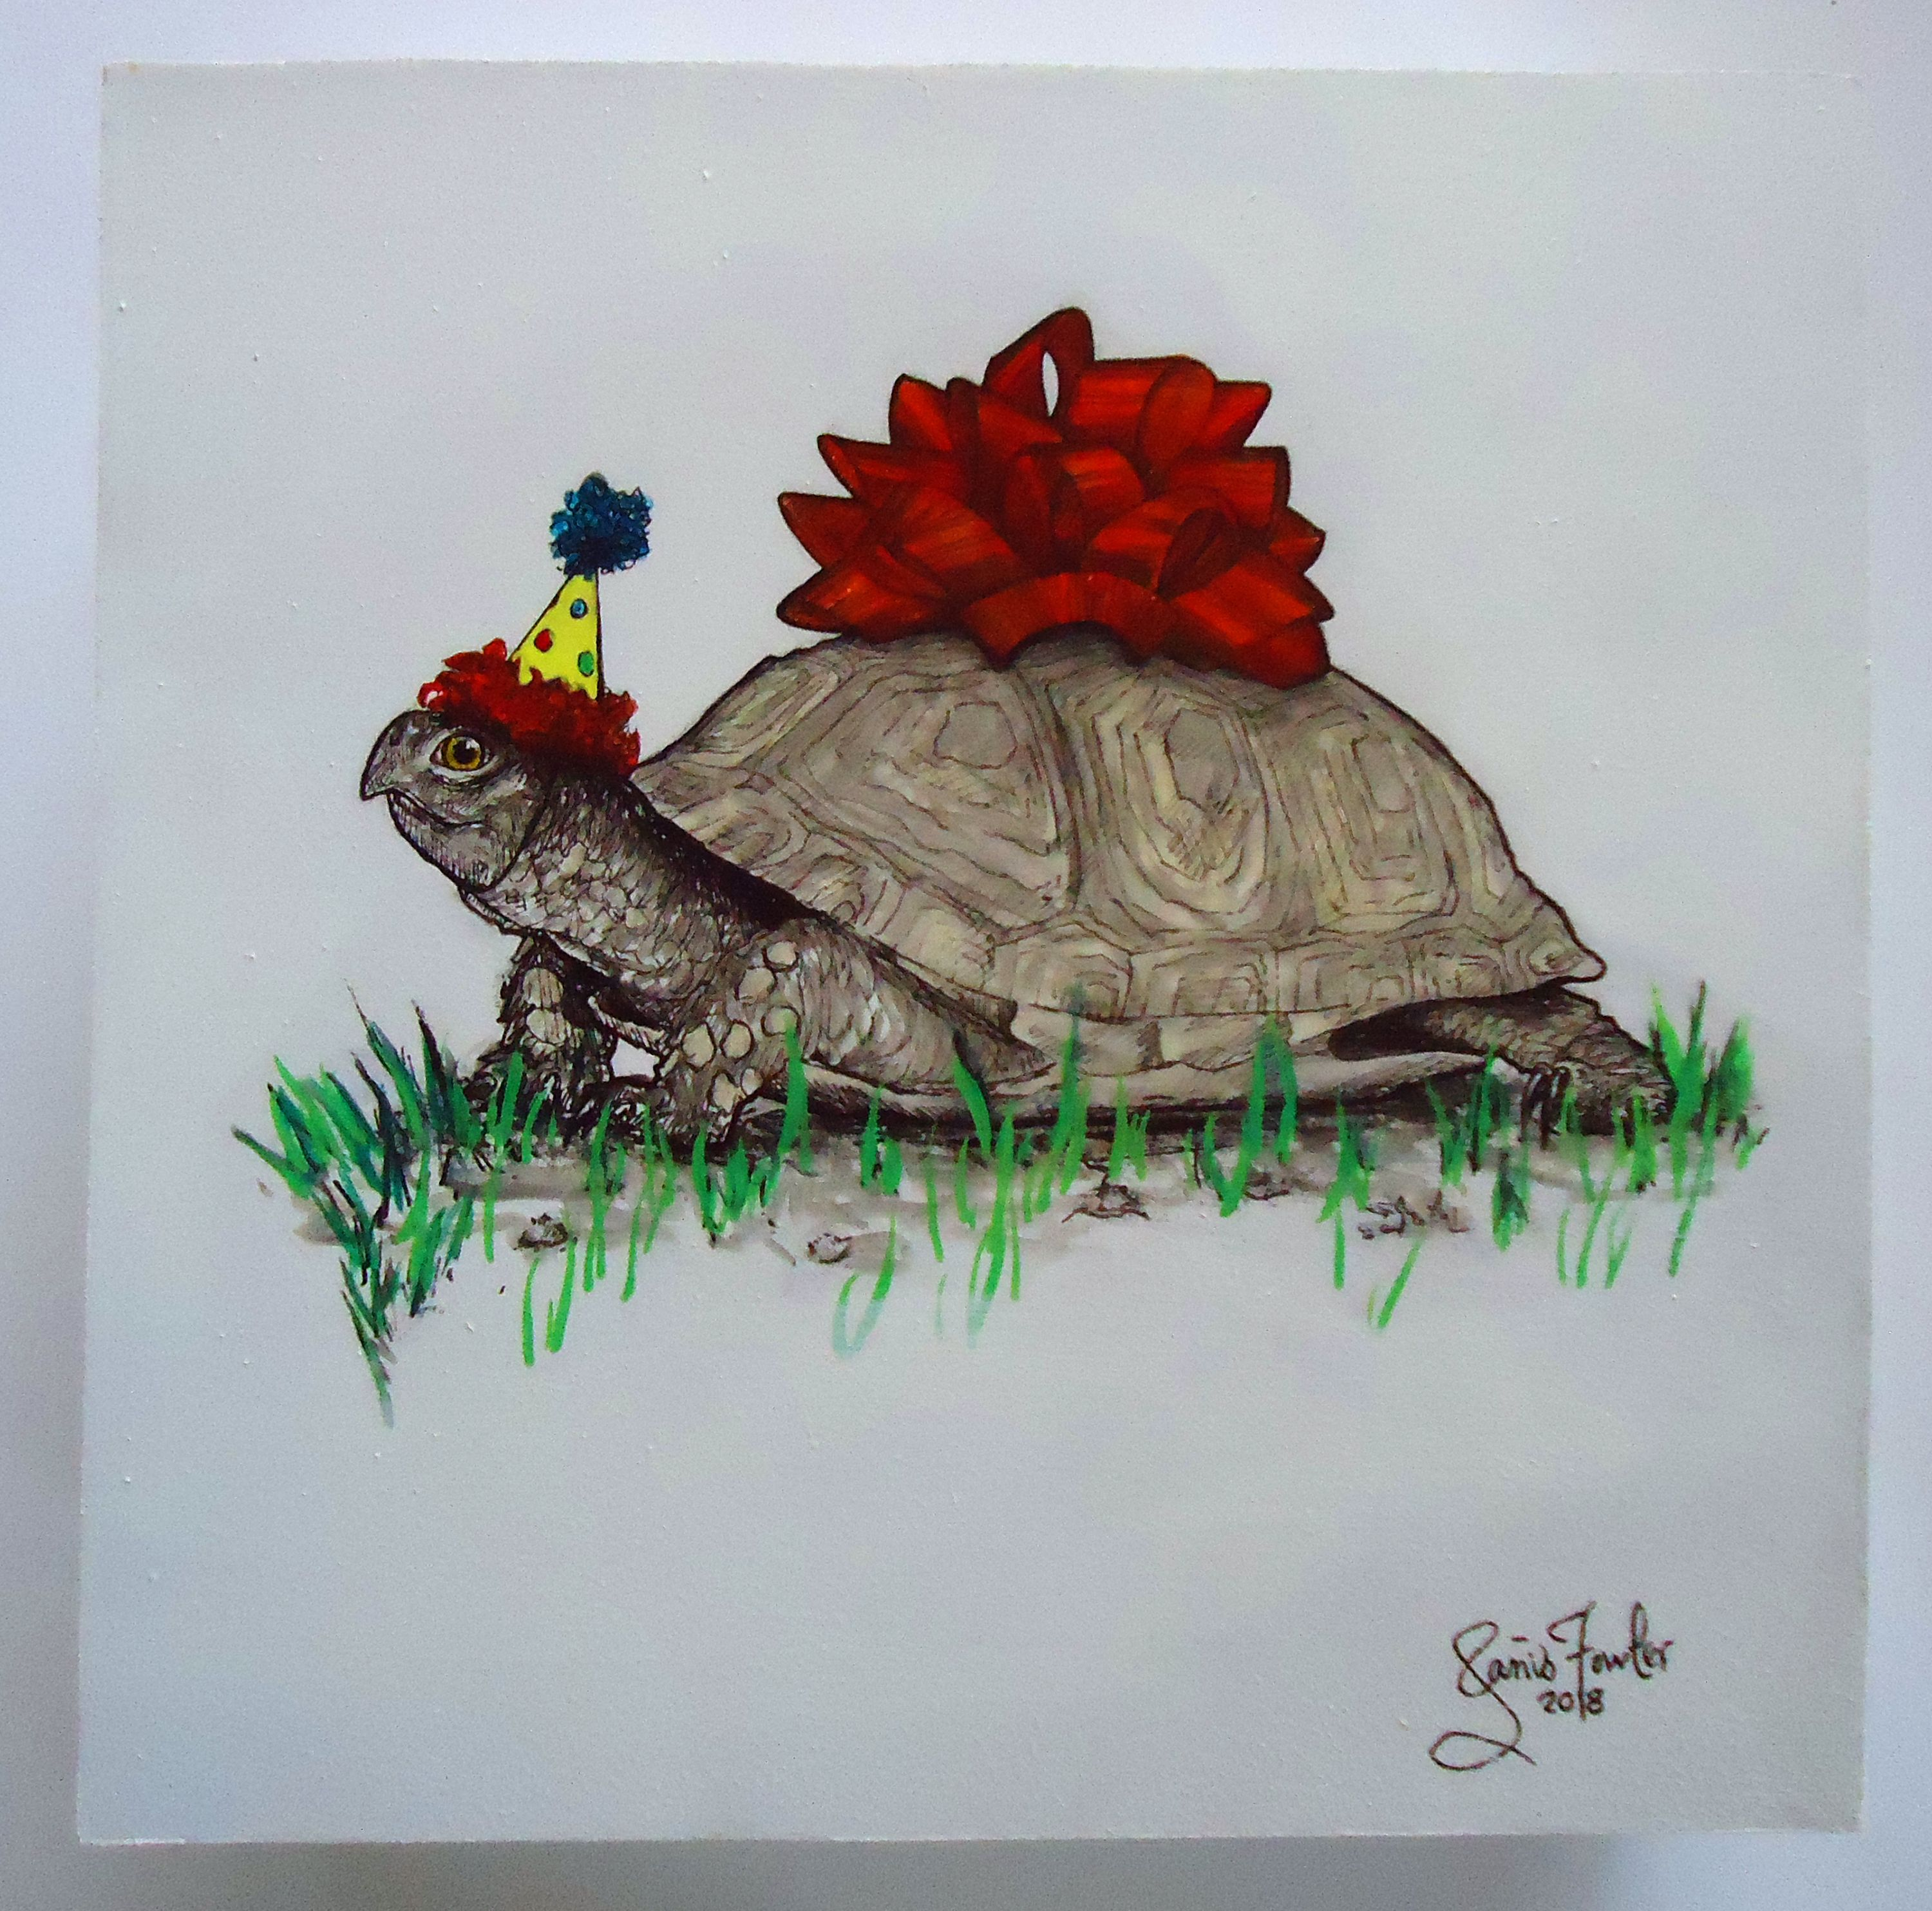 Janis_Fowler_Party Turtle_Austin_Art.jpg